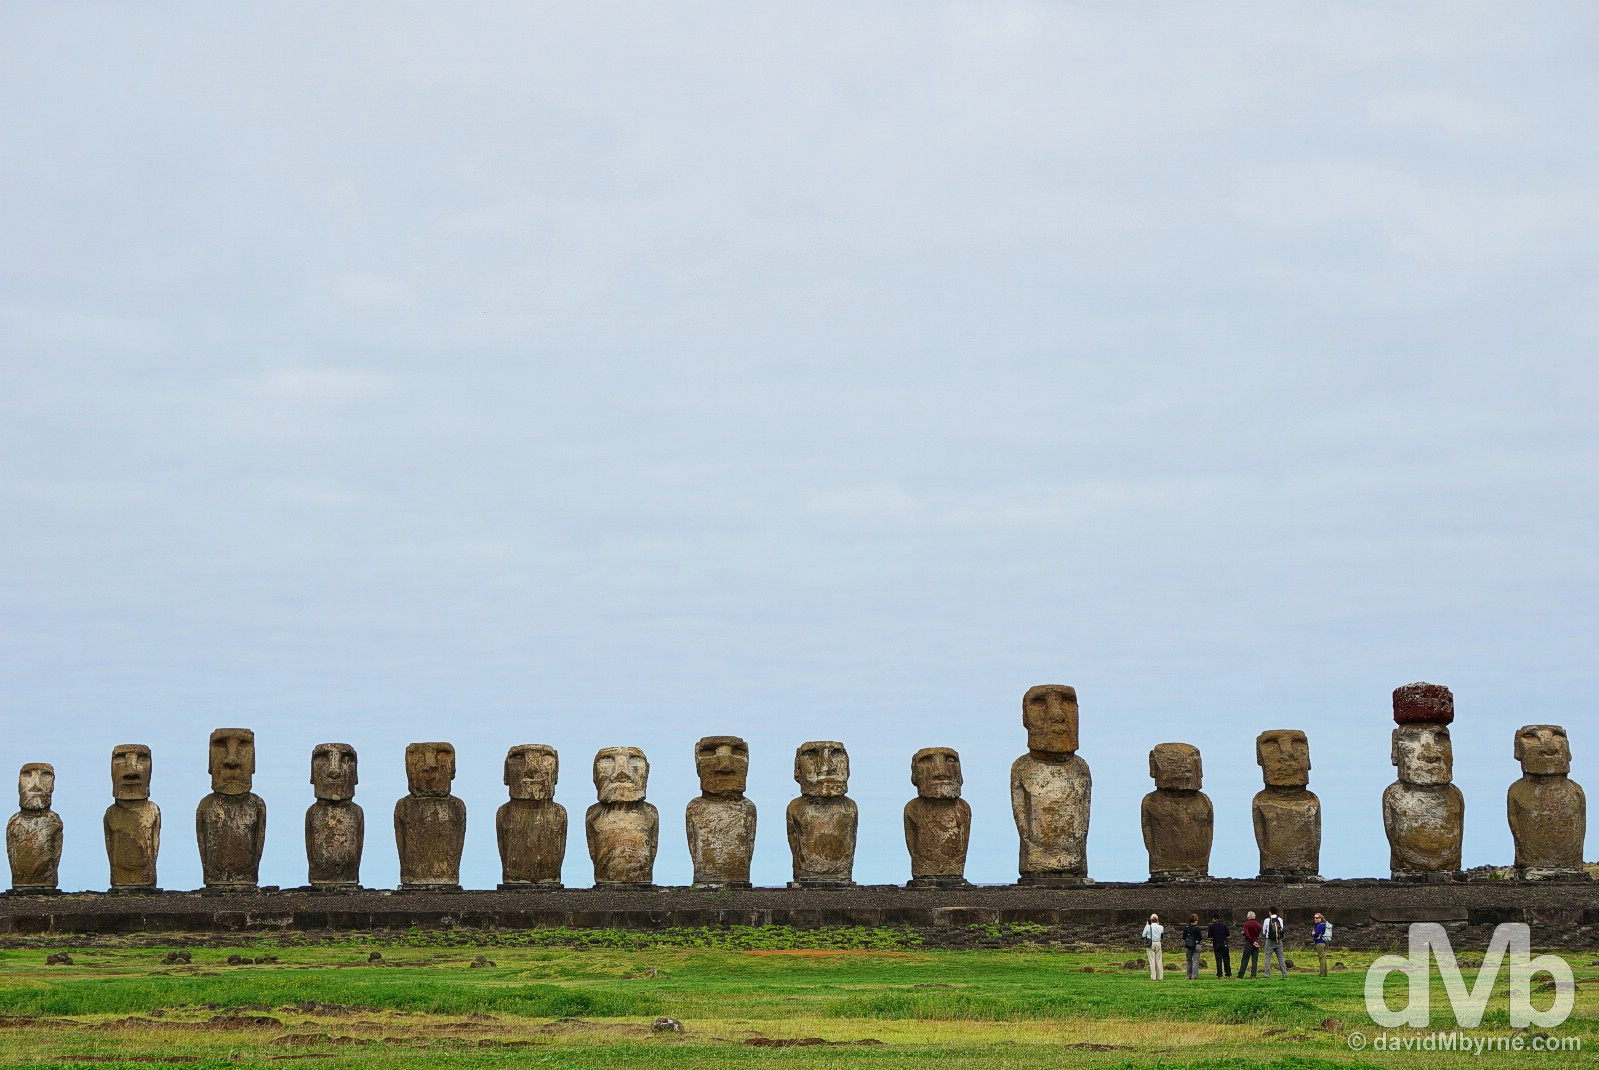 Ahu Tongariki, Easter Island, Chile. September 29, 2015.